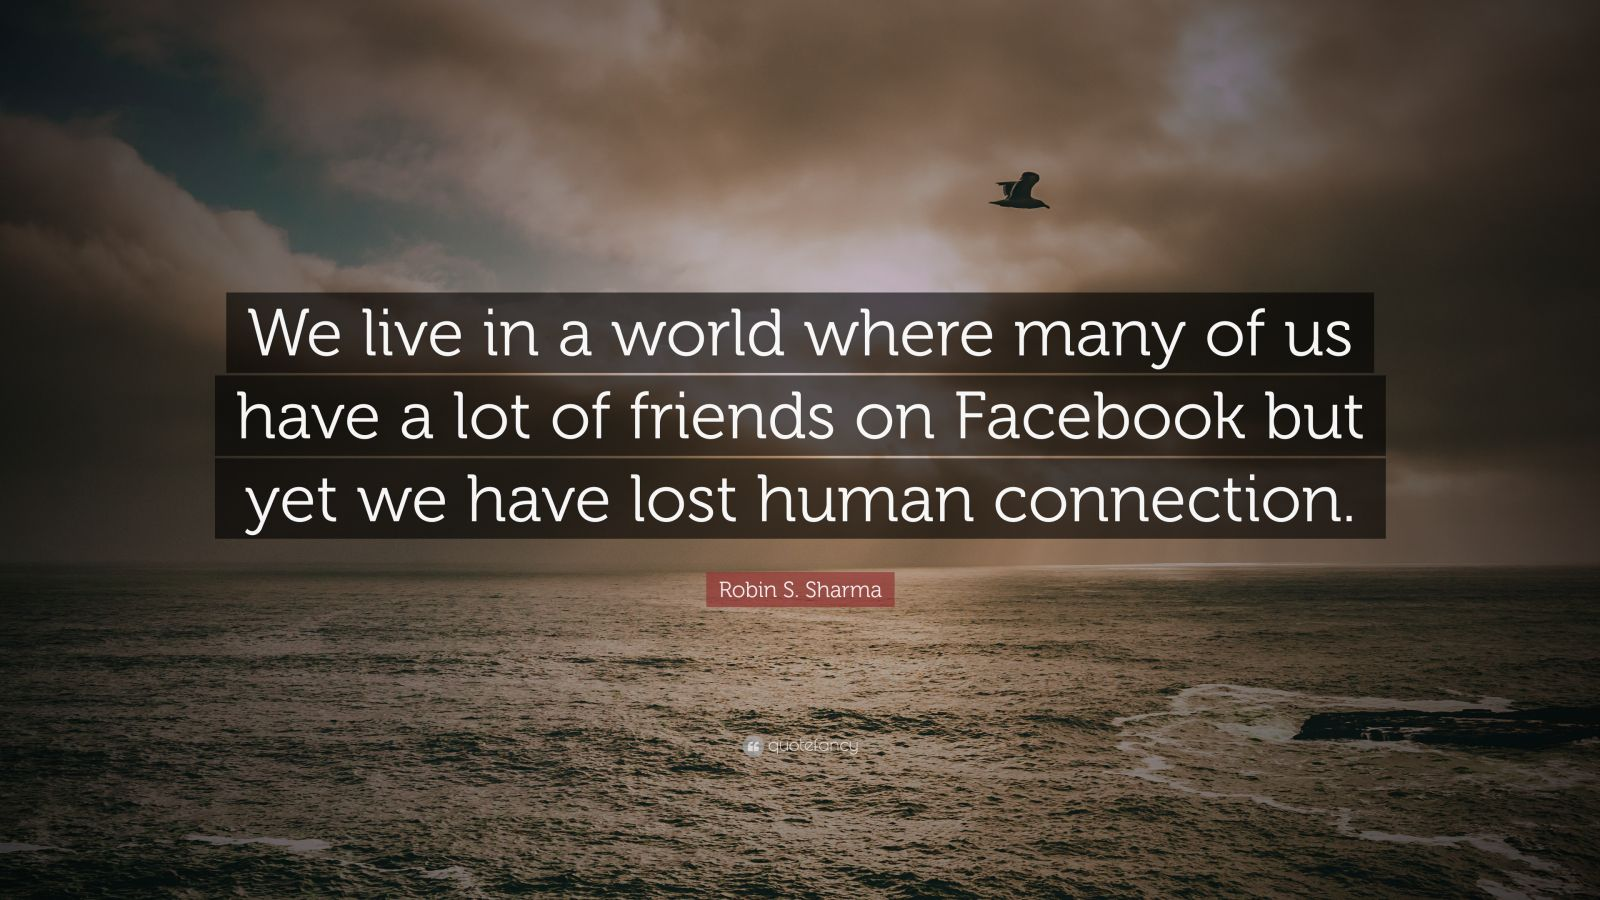 """Robin S. Sharma Quote: """"We live in a world where many of us have a lot of friends on Facebook but yet we have lost human connection."""""""